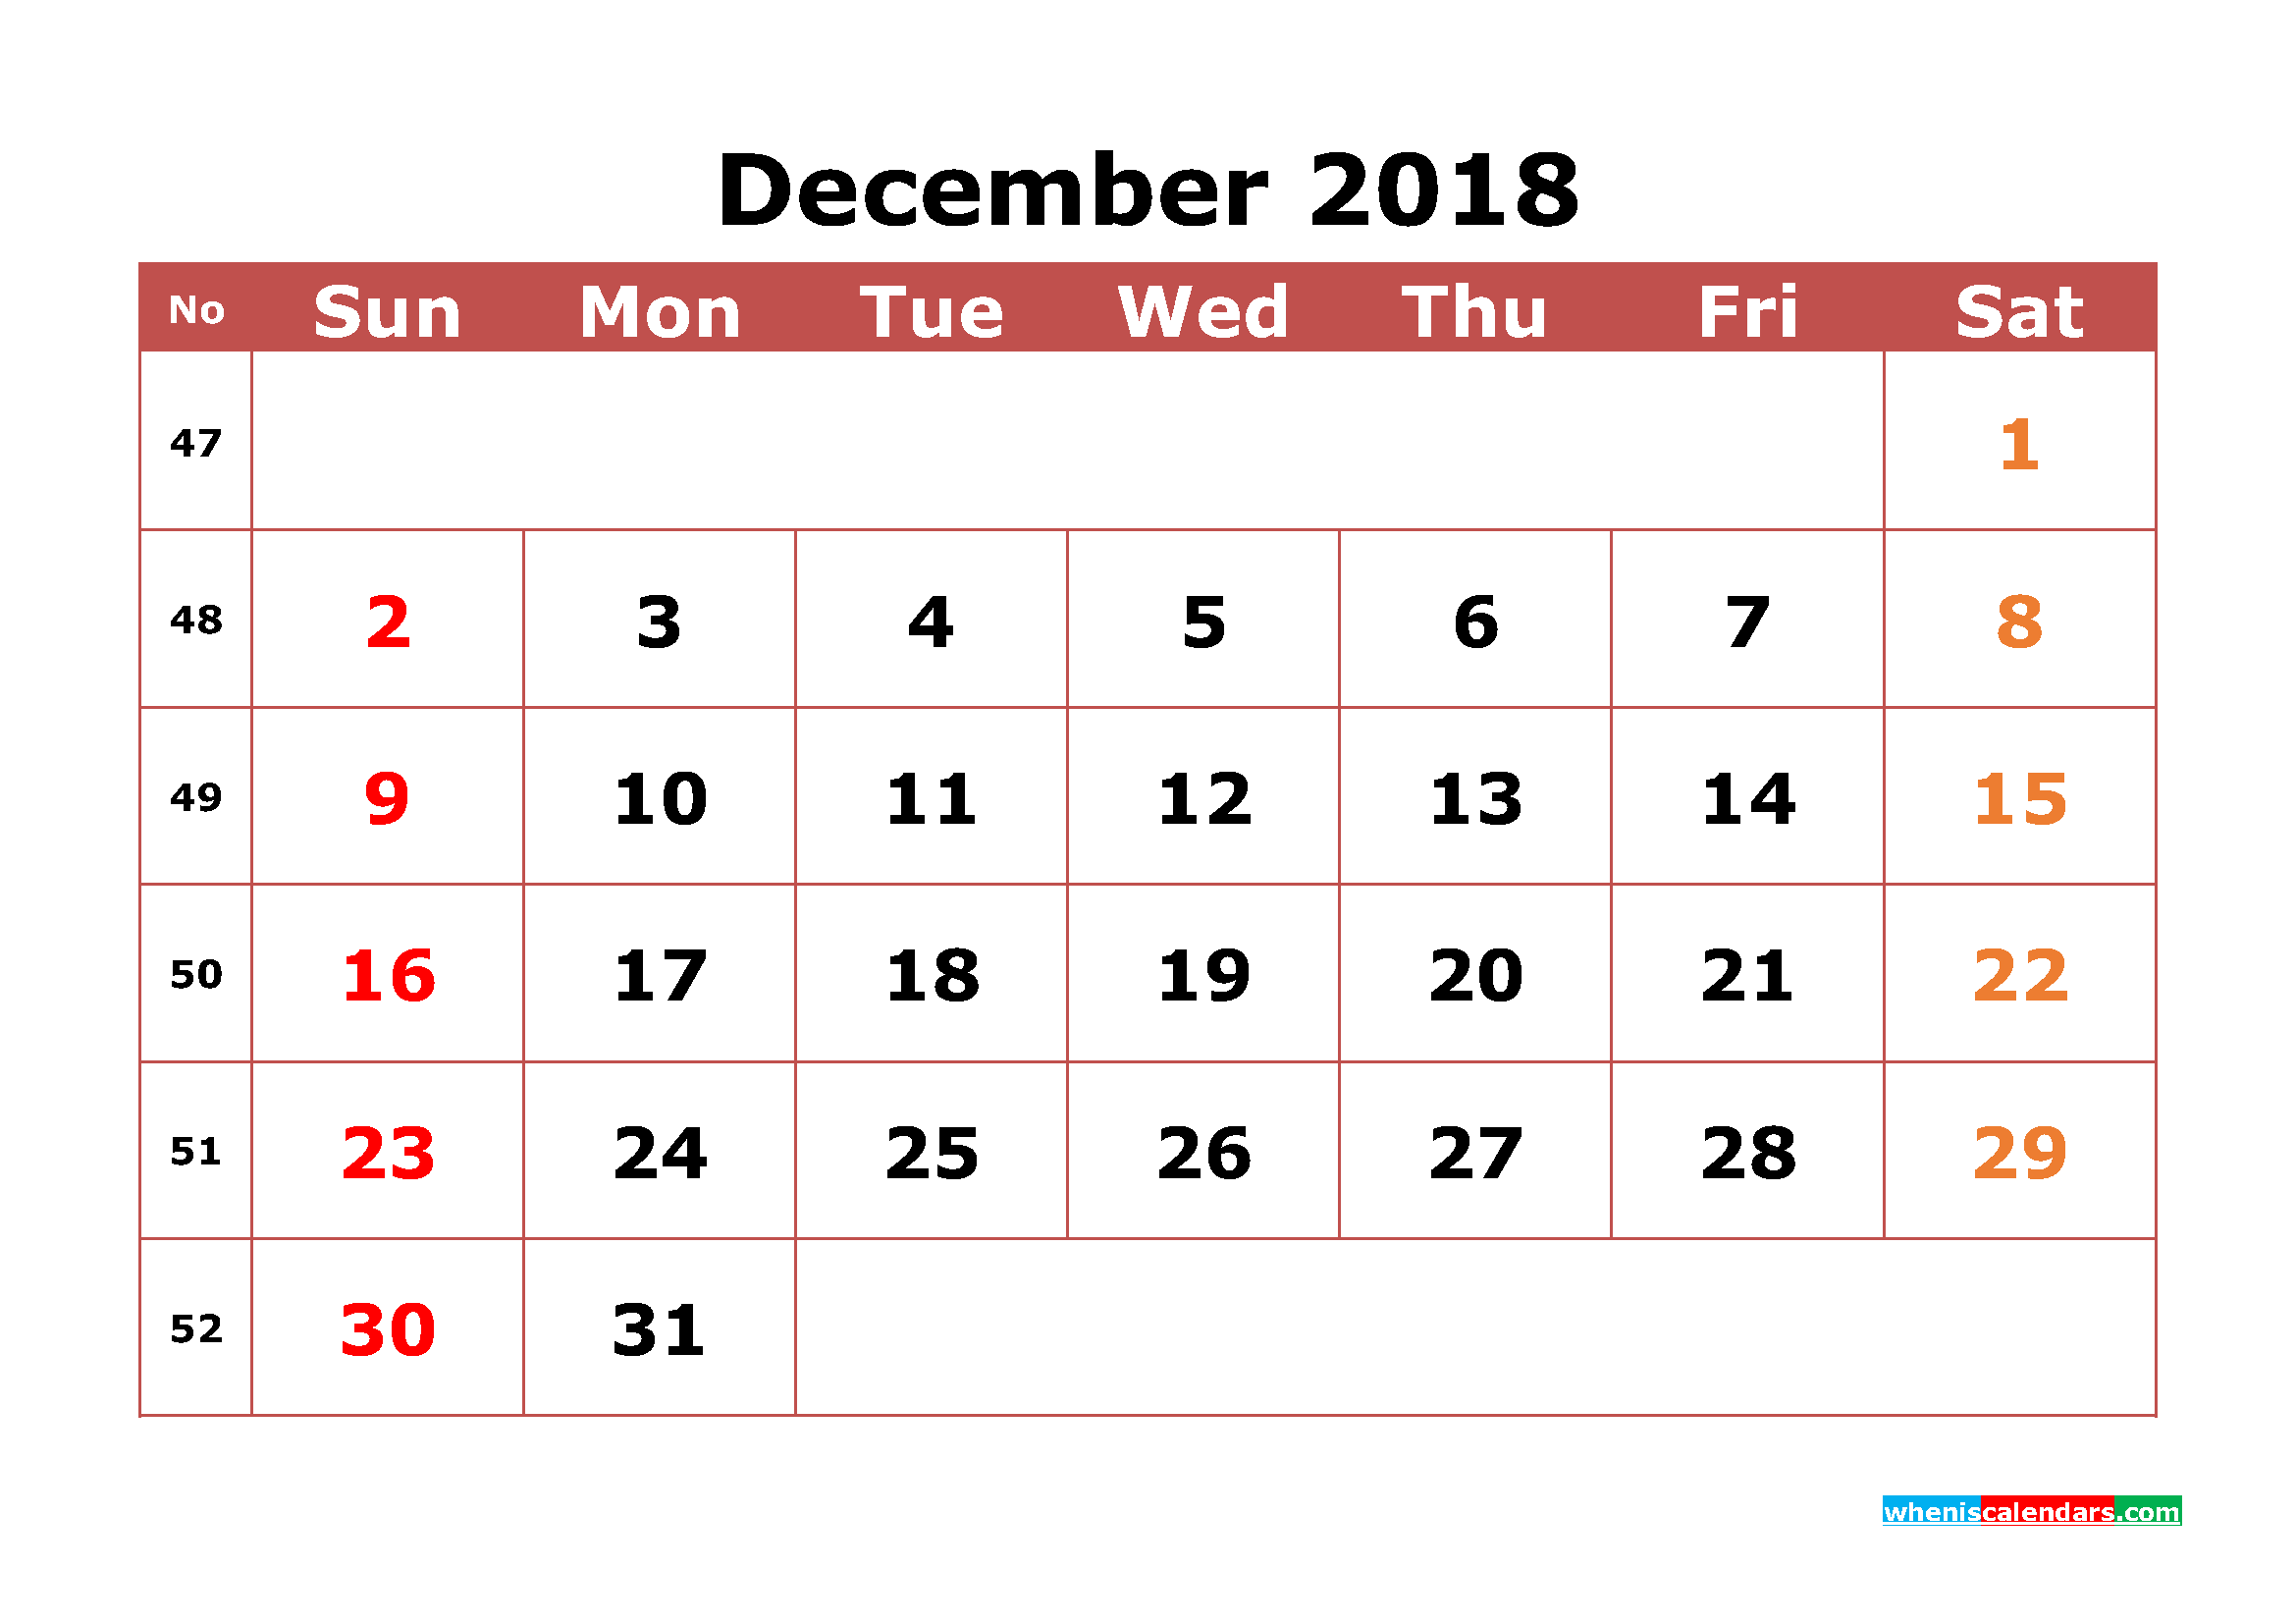 December 2018 Calendar Printable with Week Numbers Image